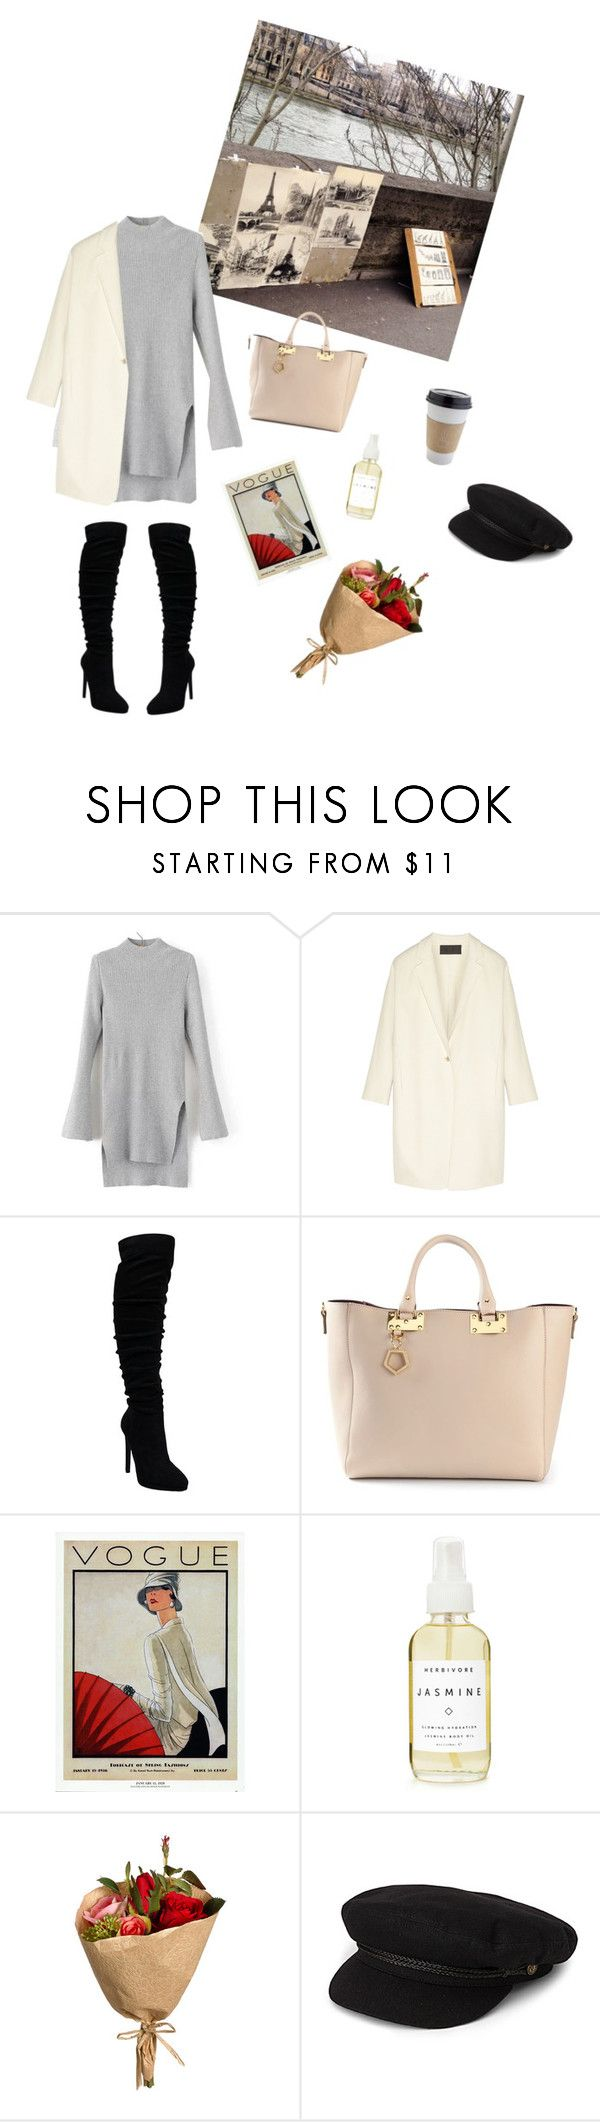 """""""Adieu"""" by respir ❤ liked on Polyvore featuring Donna Karan, Sophie Hulme, WALL, Herbivore and Brixton"""